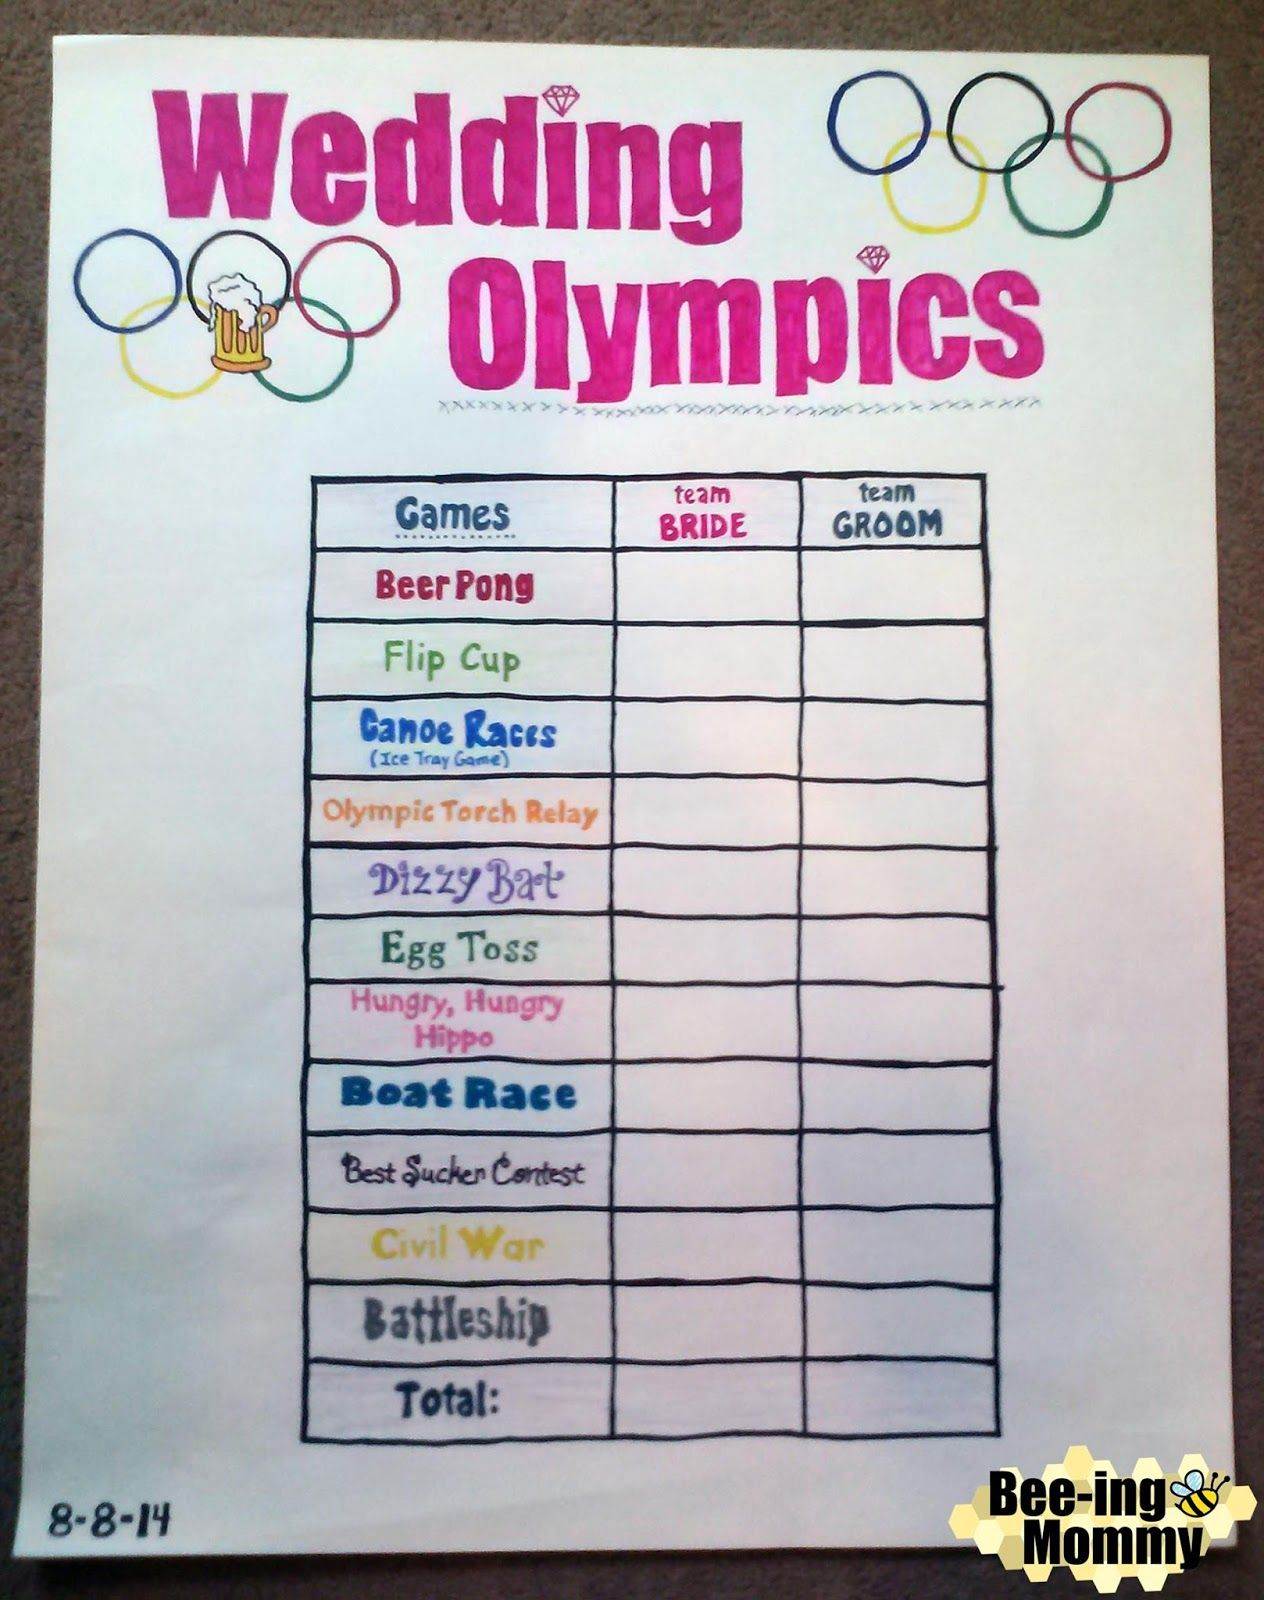 Team Name For Bridesmaids : bridesmaids, Wedding, Olympics, Olympic,, Party,, Games